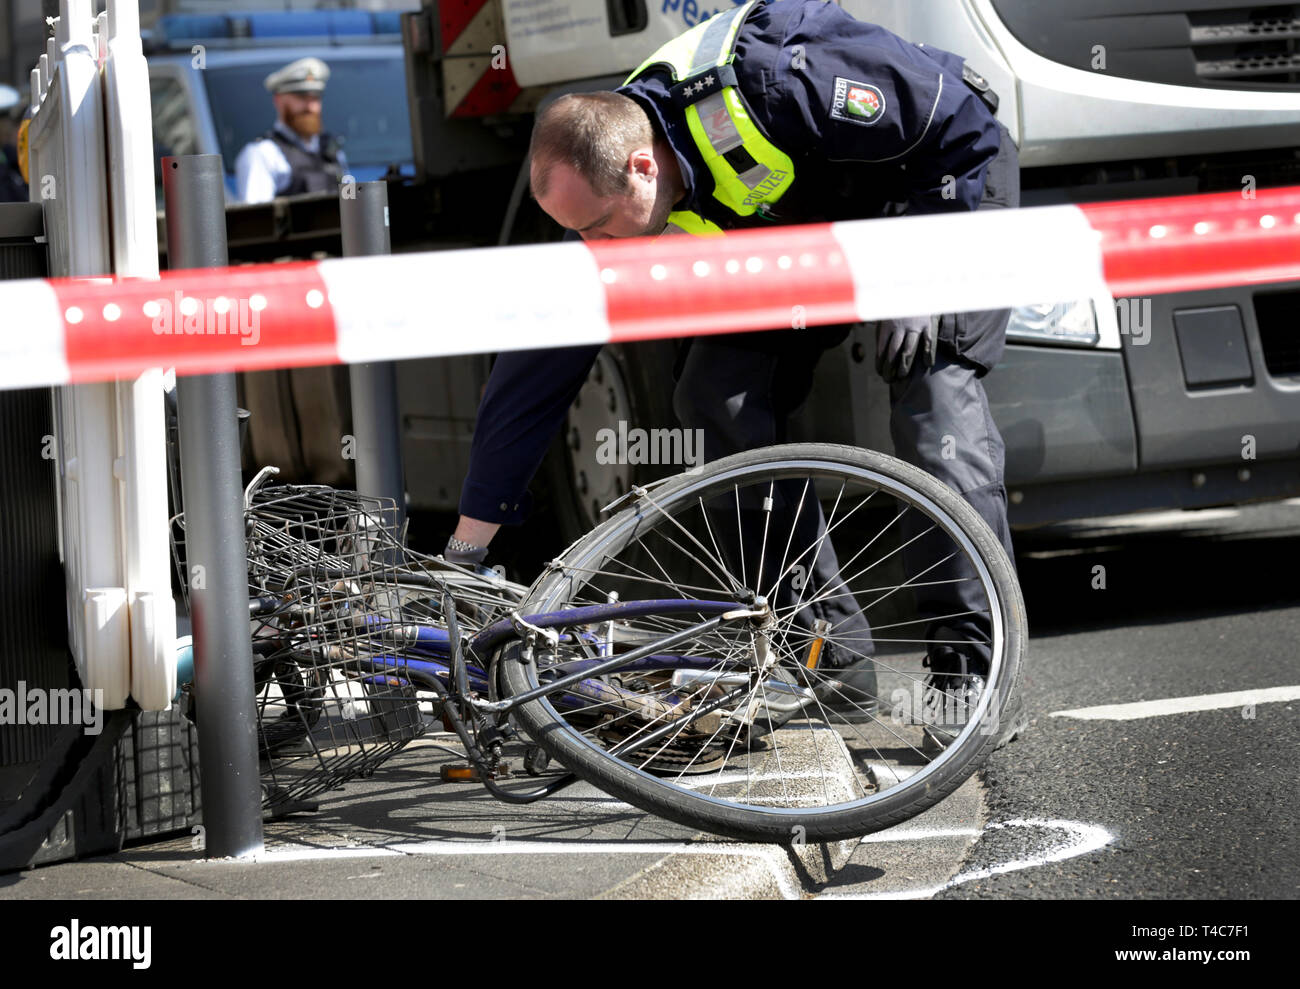 """16 April 2019, North Rhine-Westphalia, Düsseldorf: Behind a barrier tape with the inscription """"Police barrier"""", a bicycle is lying in front of a truck at the scene of the accident. There has been an accident with a truck (in the back) and a cyclist in downtown Düsseldorf. More precise circumstances regarding the cause of the accident are not yet known. Photo: Martin Gerten/dpa Stock Photo"""